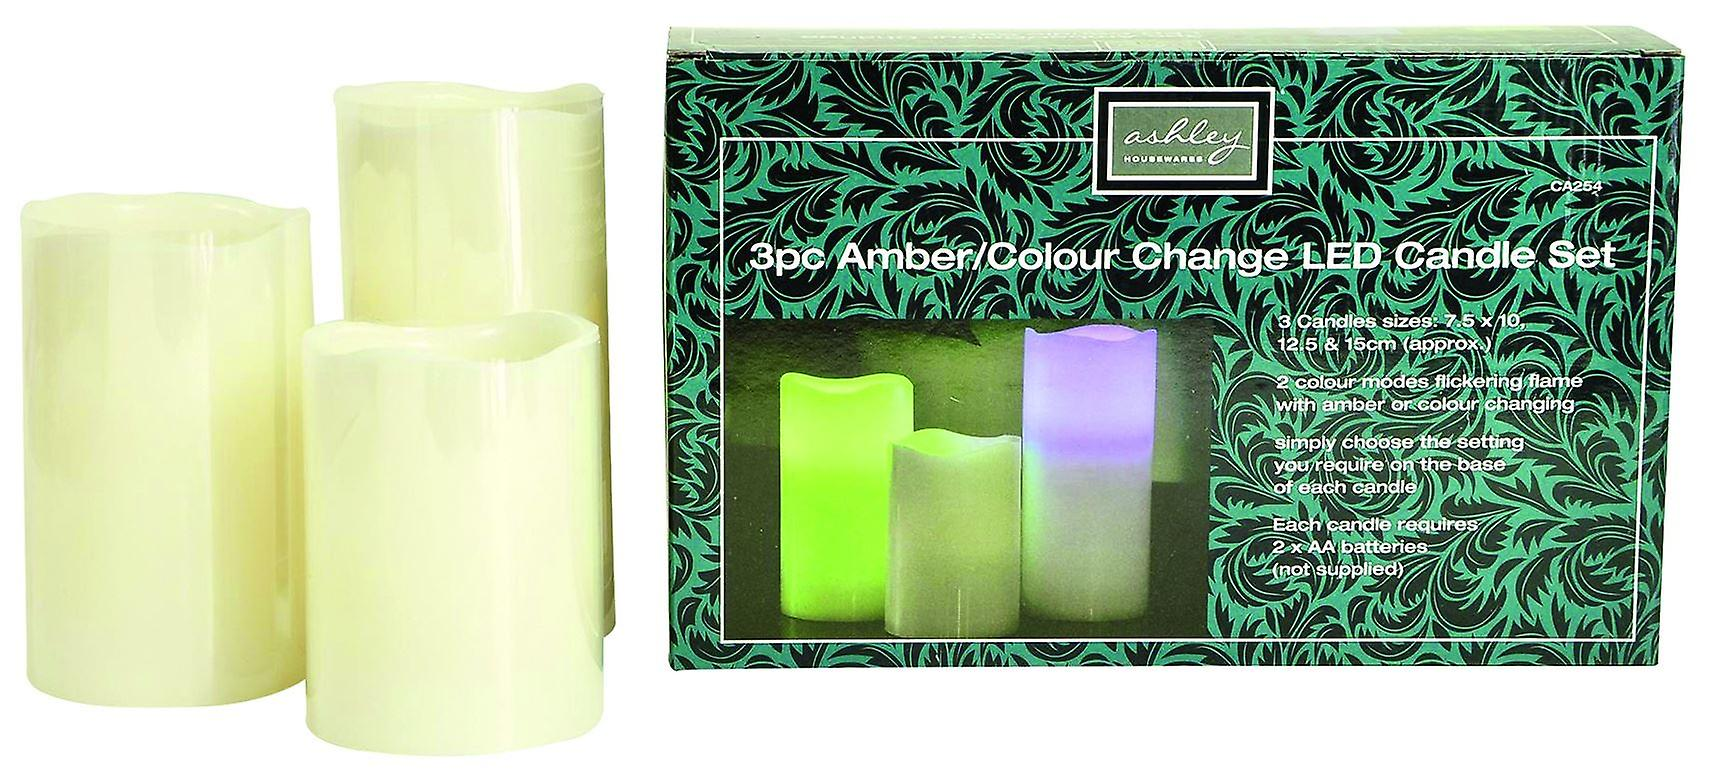 Set of 3 LED Candles Amber/Colour change